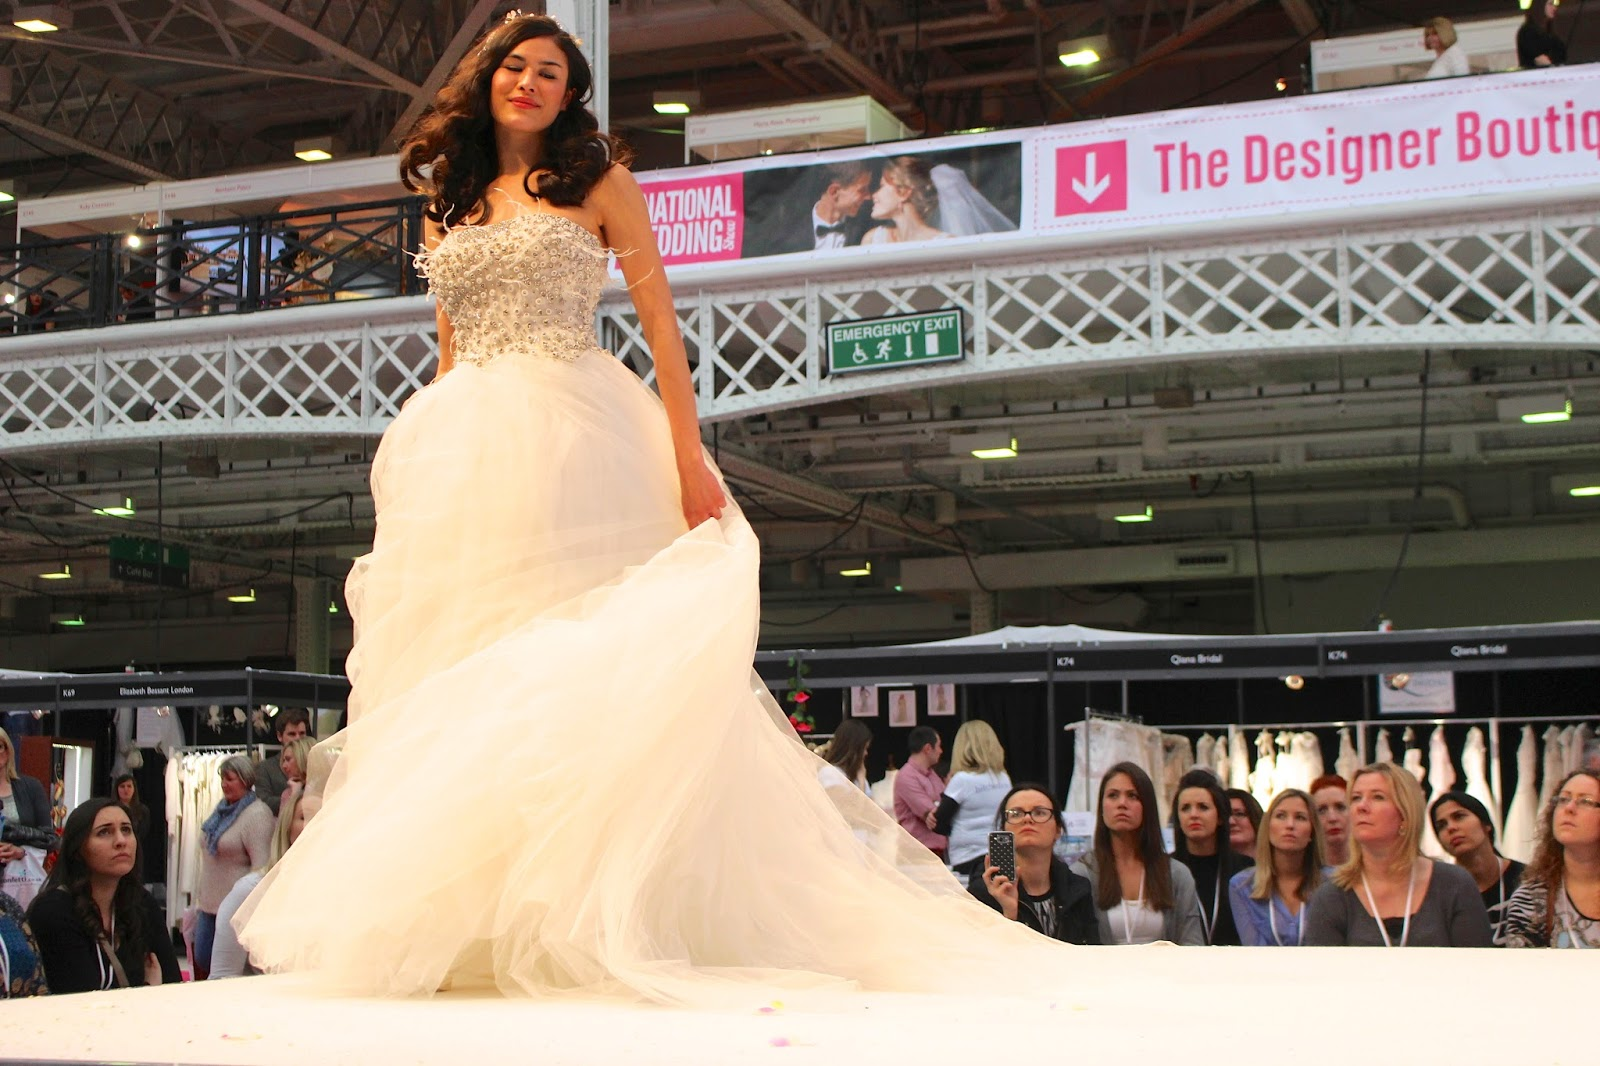 Finiks bridal wear the national wedding show